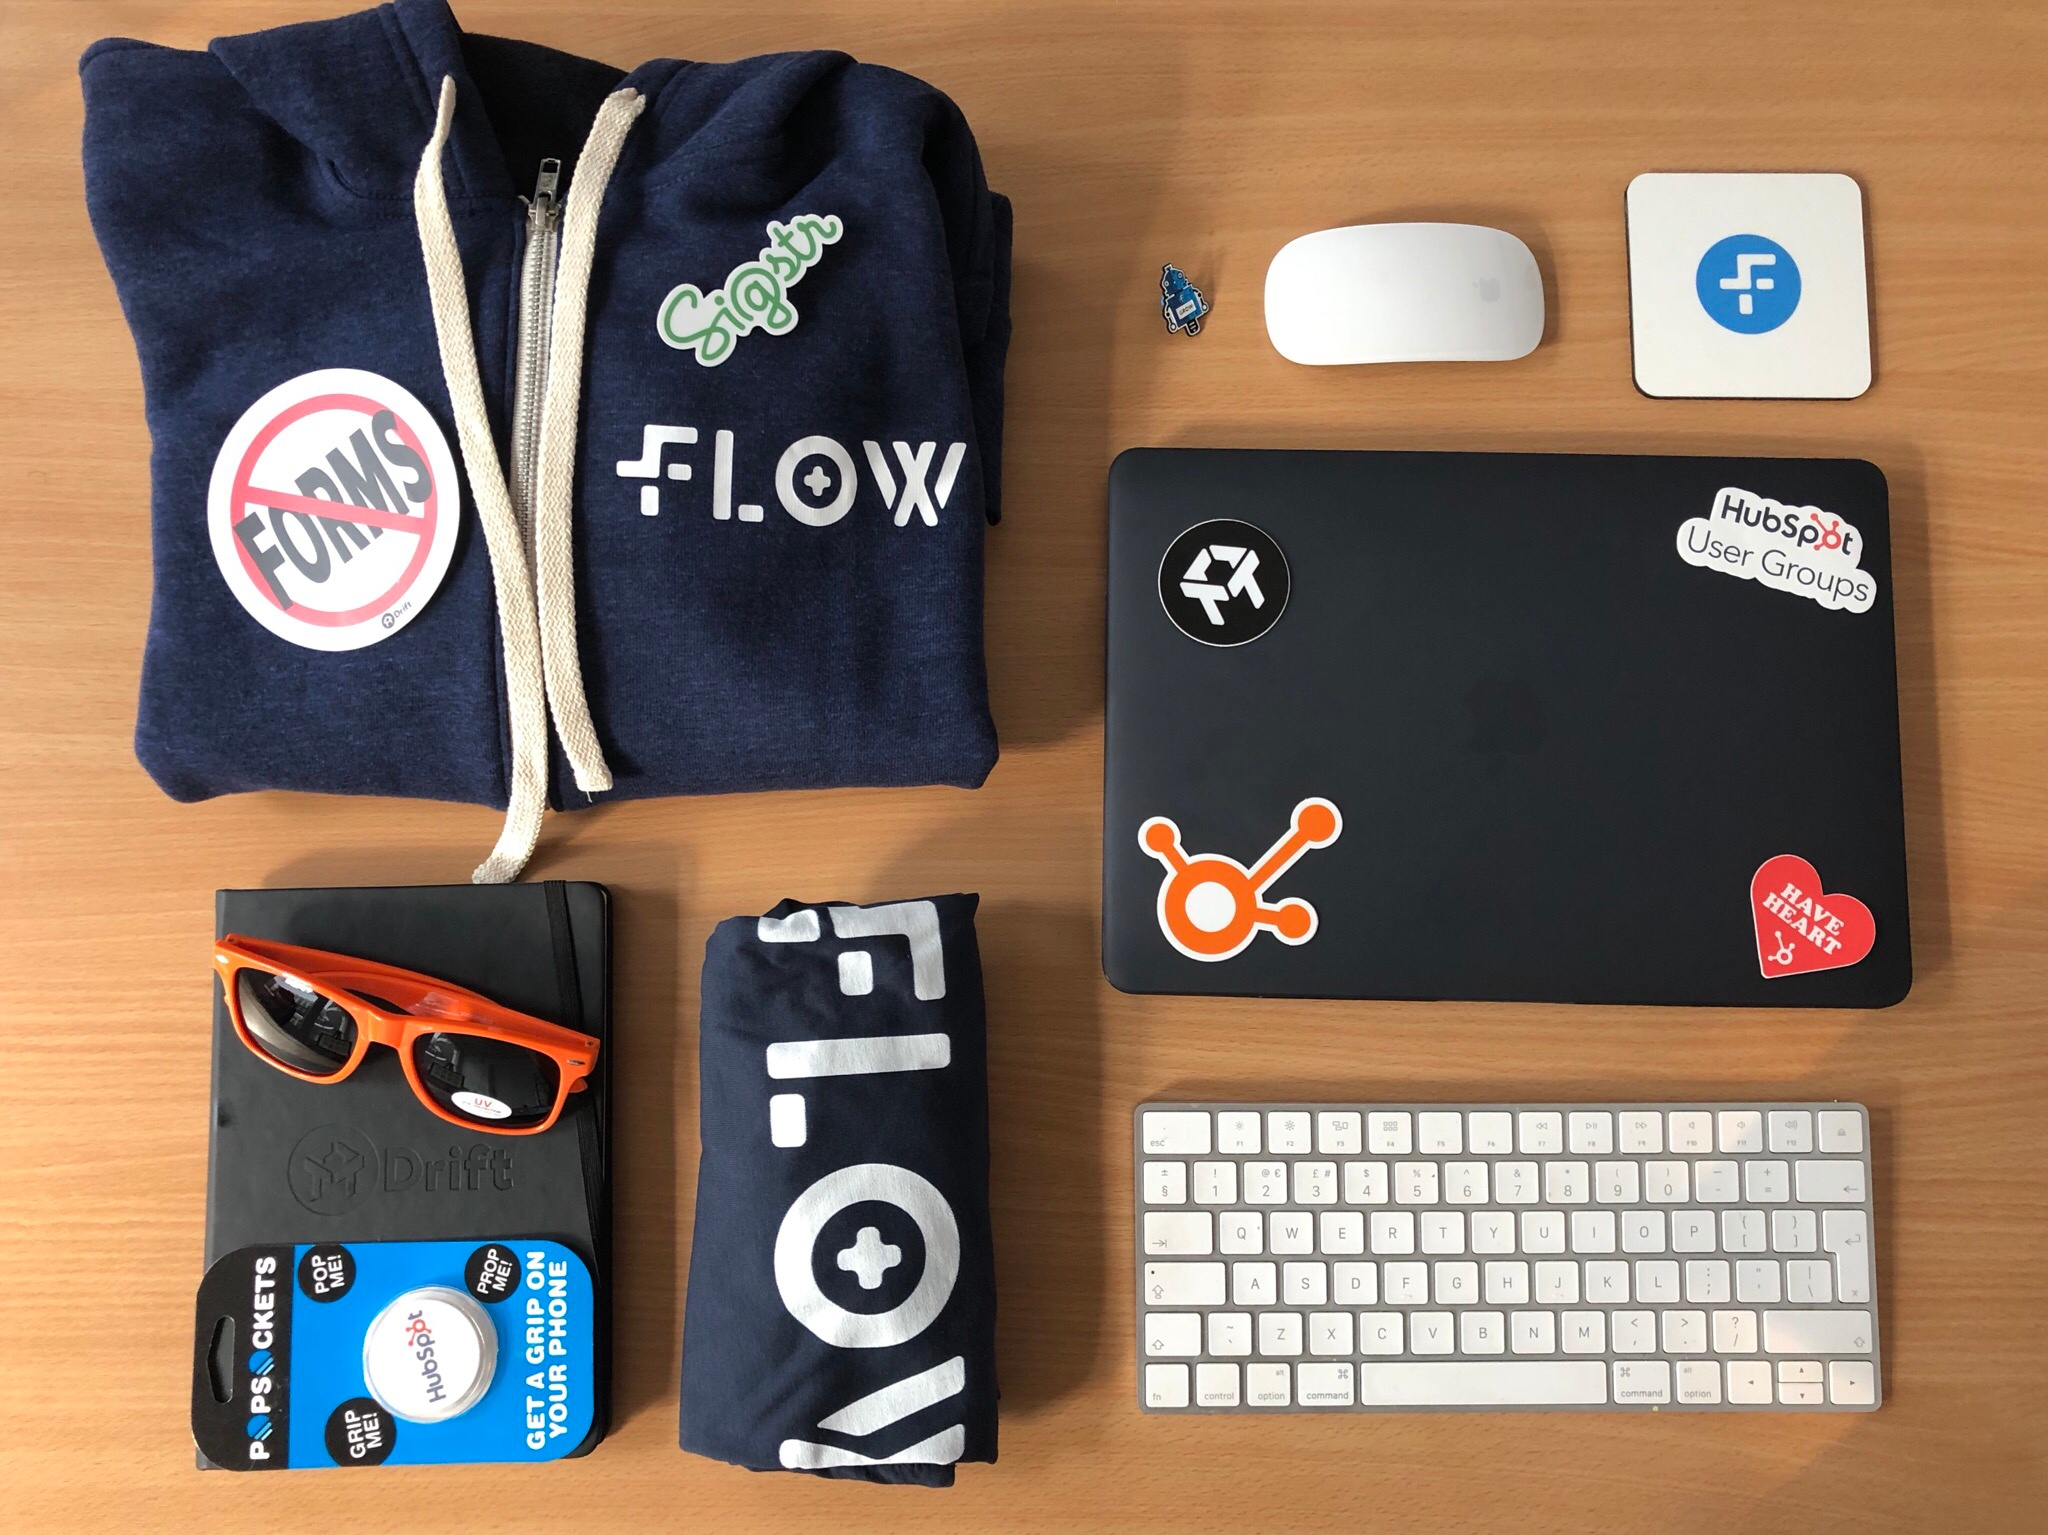 Week one at Six & Flow First impressions from an inbound strategist